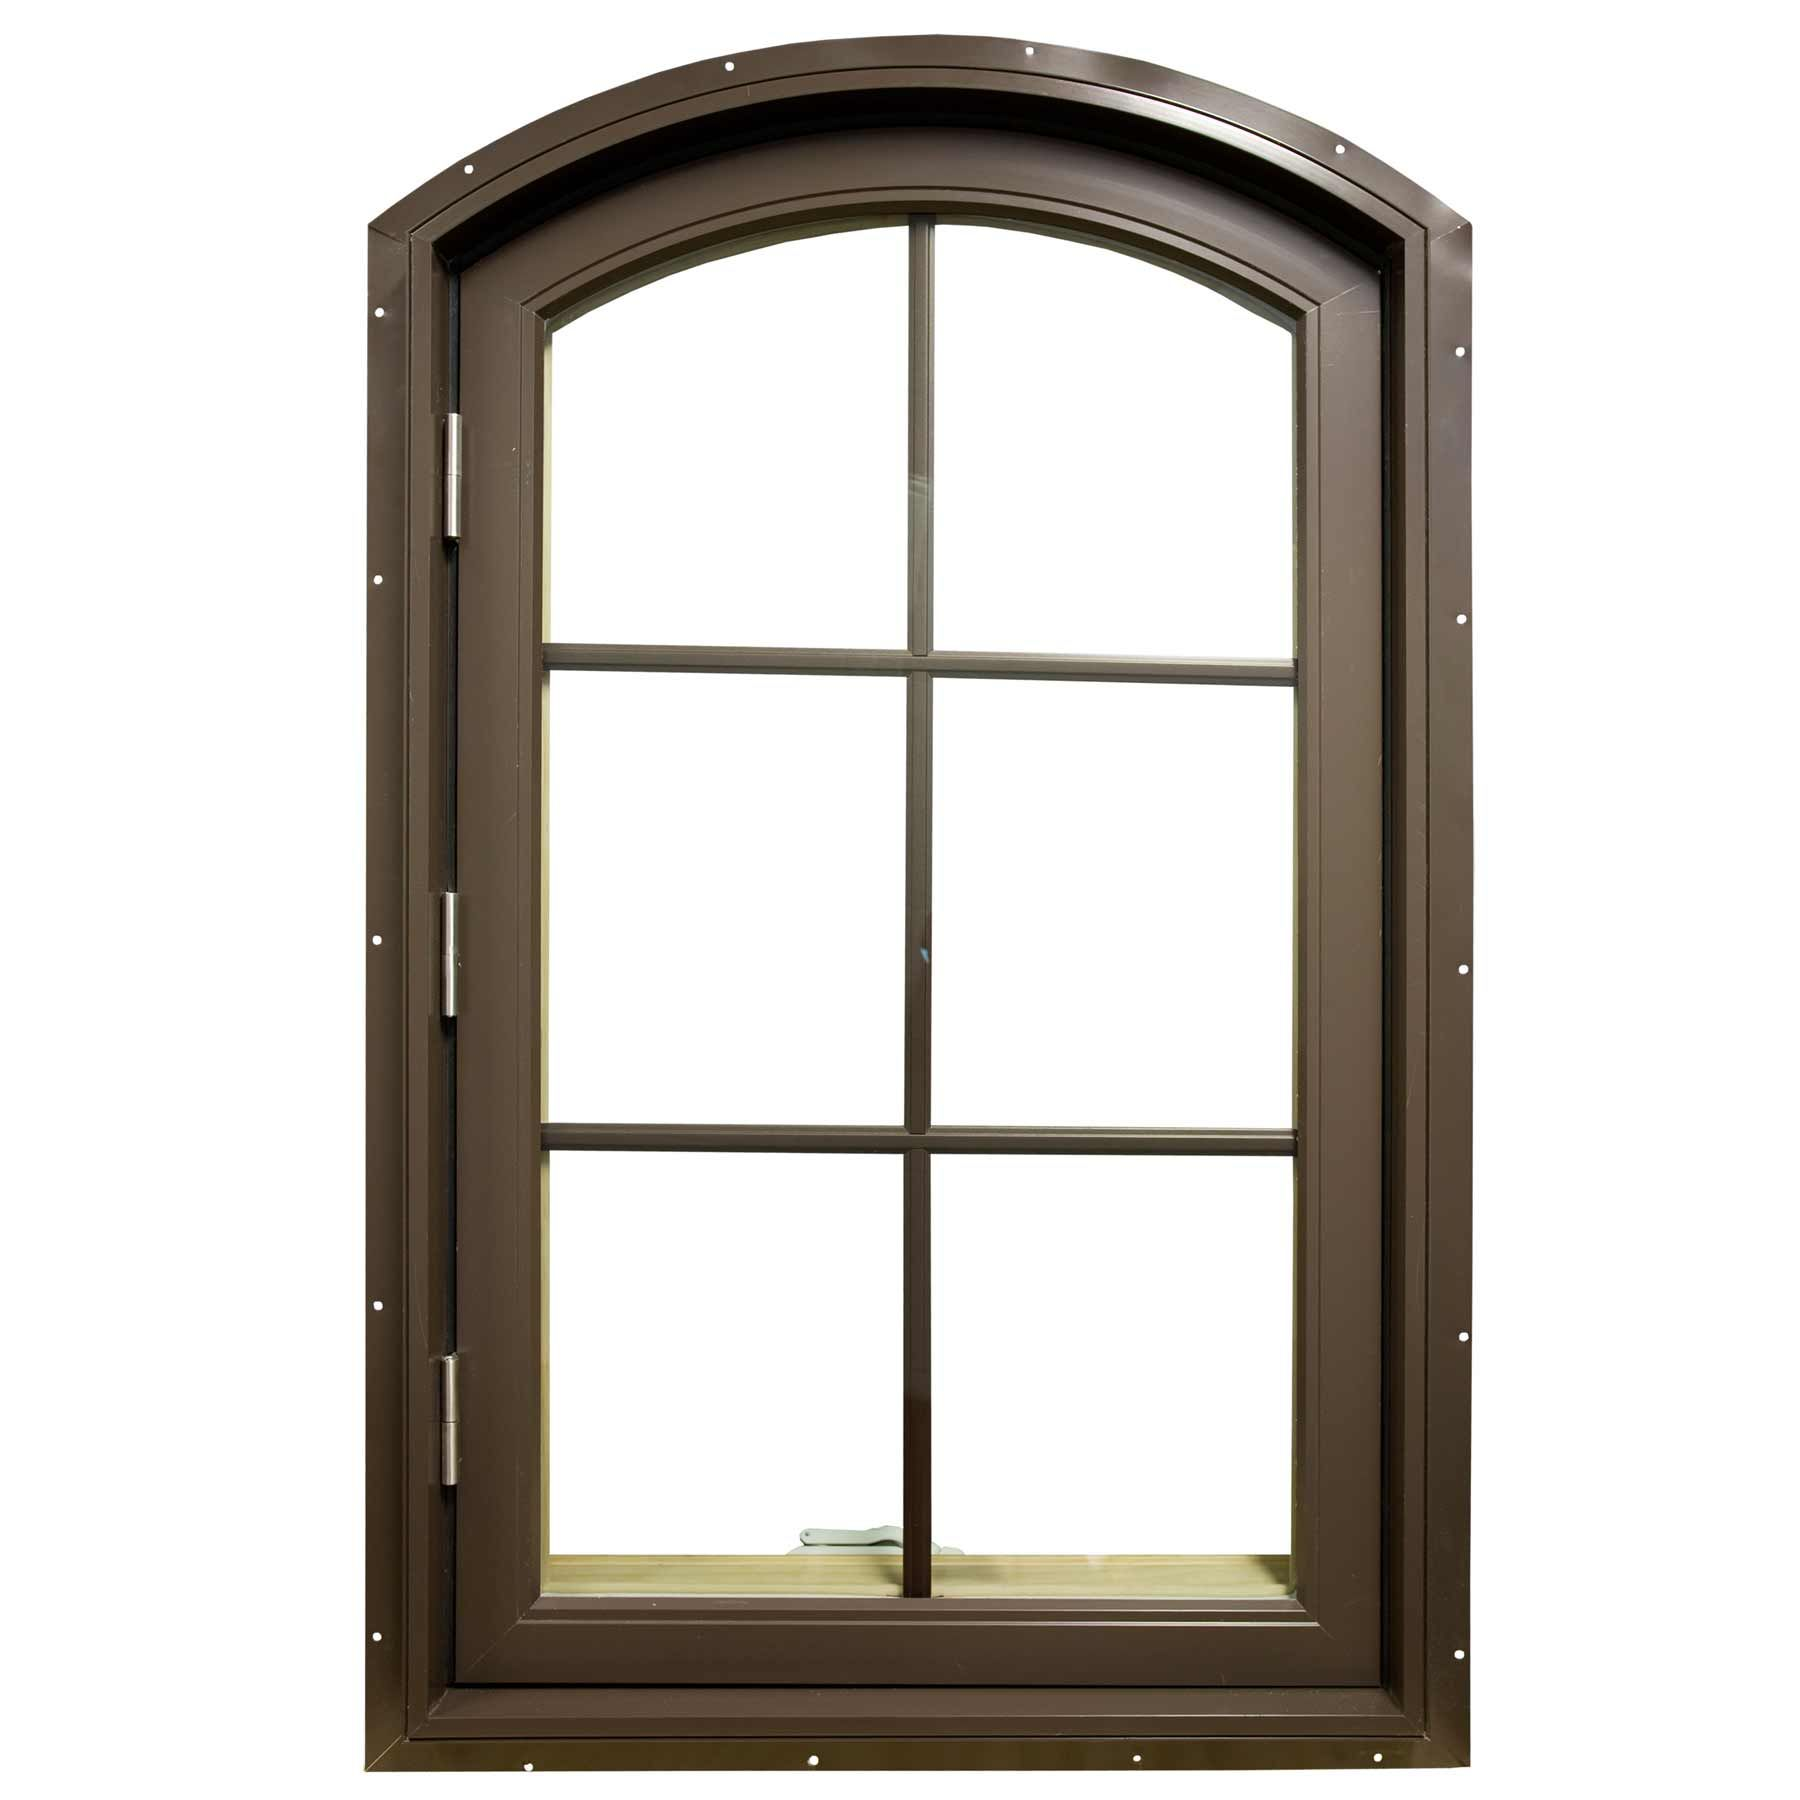 Aluminum casement windows for home feel the home for Home window design pictures